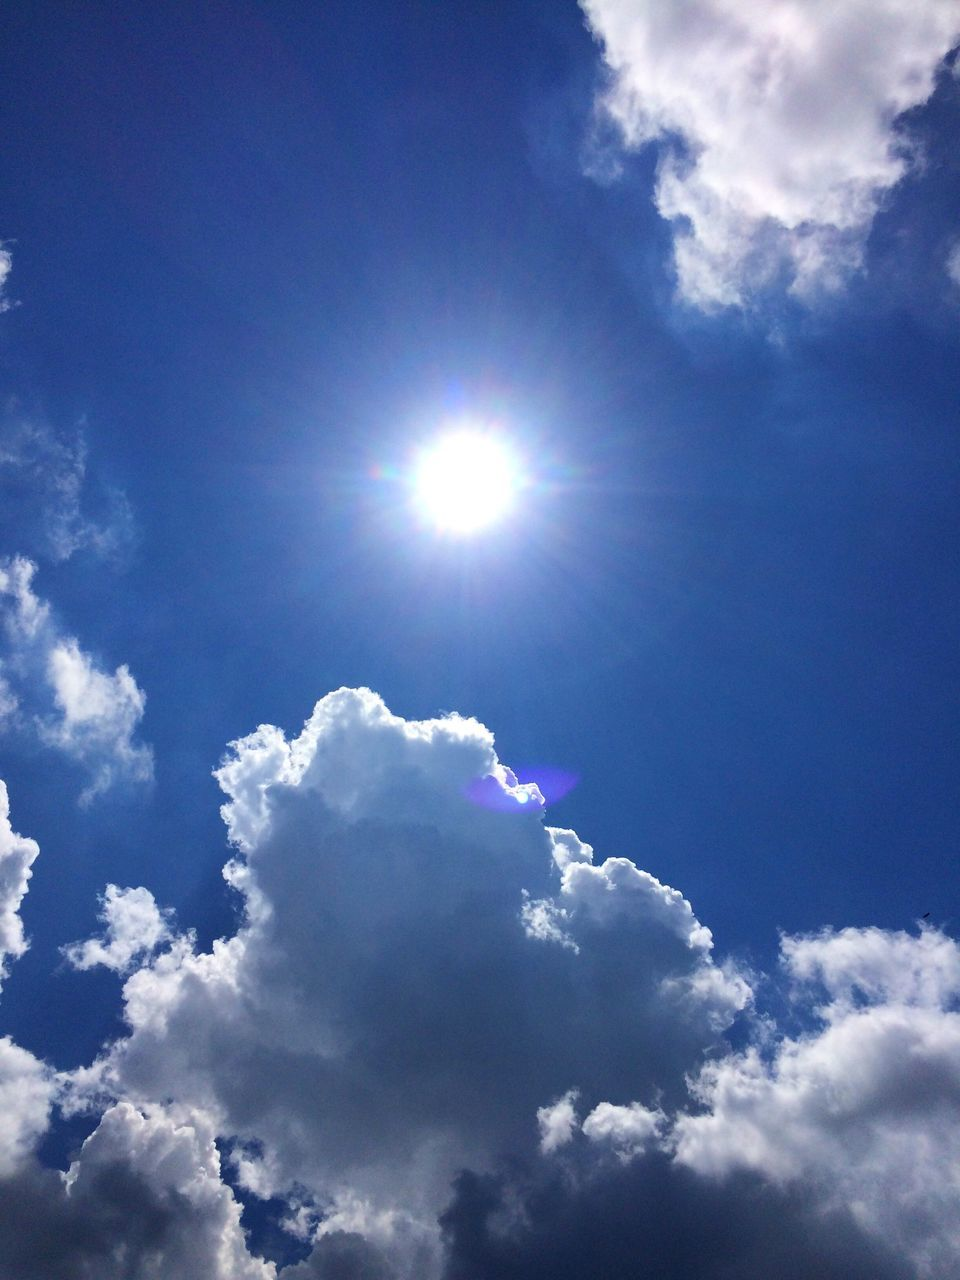 cloud - sky, sky, low angle view, nature, sunbeam, beauty in nature, sun, sunlight, cloudscape, tranquility, blue, scenics, sky only, bright, outdoors, no people, tranquil scene, day, backgrounds